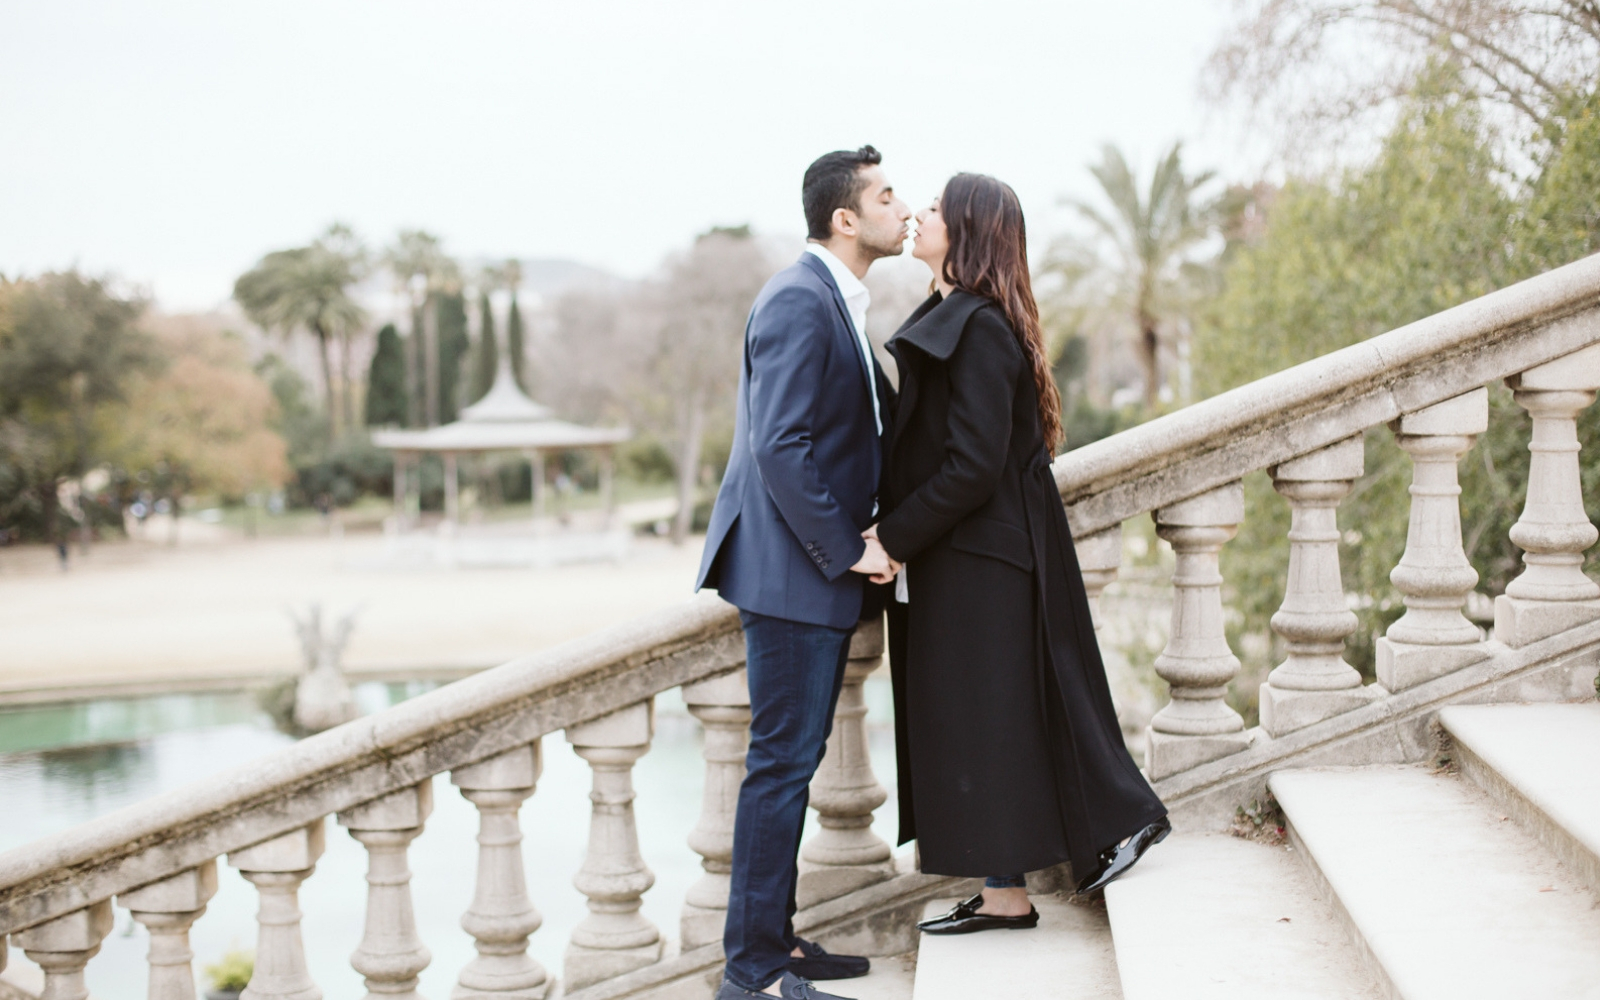 Engagement photo session in Ciutadella Park, Barcelona